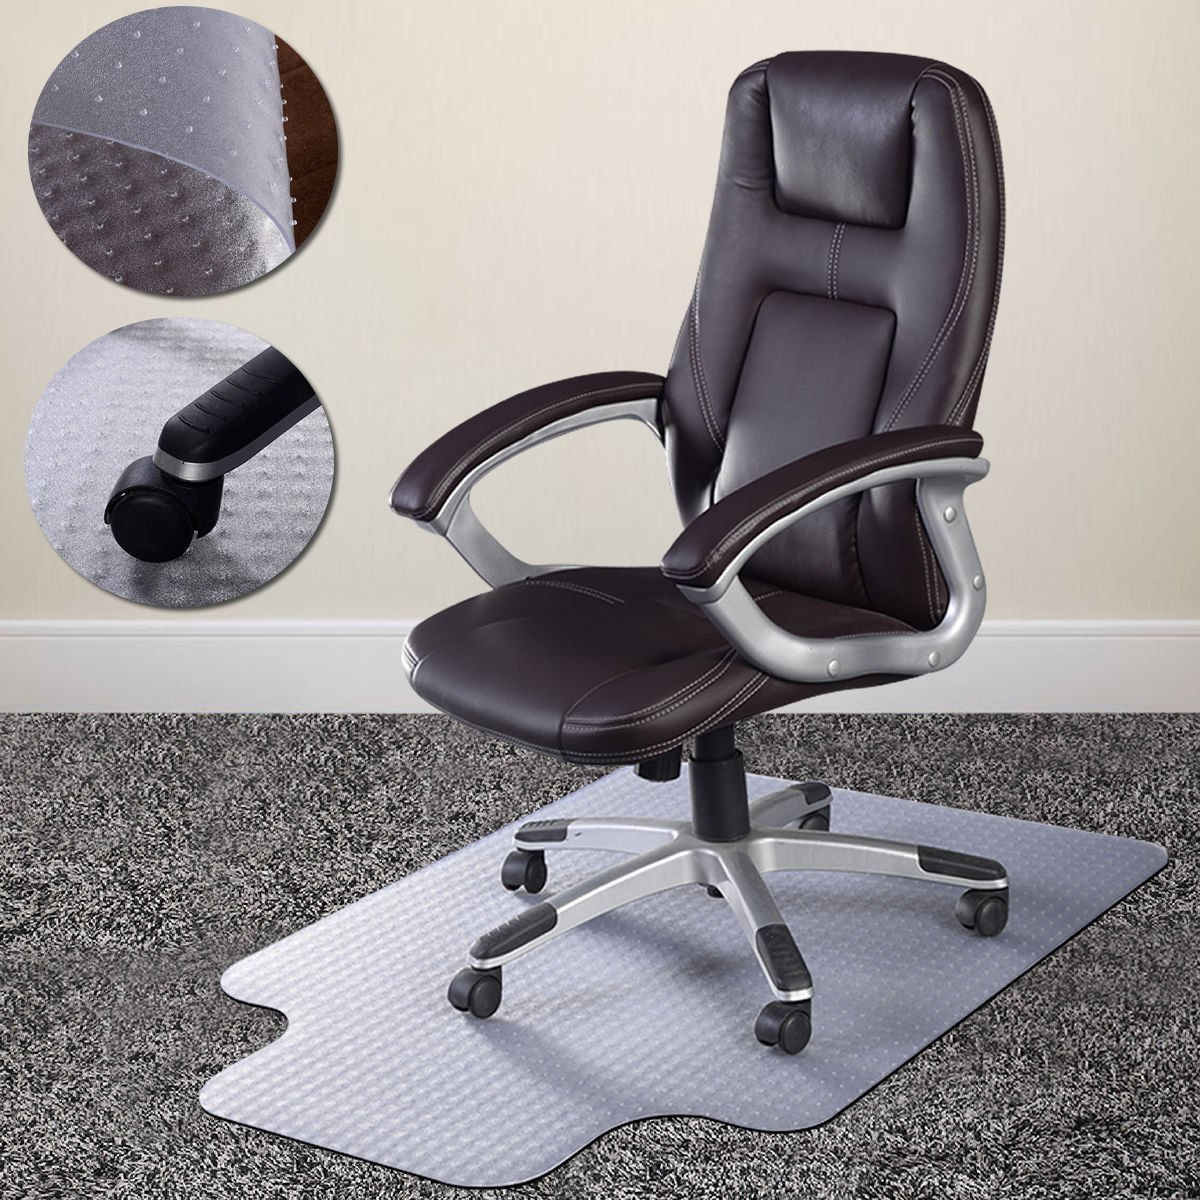 PVC Chair Mats, 36''X 48''Carpet Chair Mat with Lip,Easy Glide Hard Floor Chair Mat,Office Casters Chair Mat,Protect Expensive Carpets,Wooden or Tiled Floors From Scraching for Home & Office